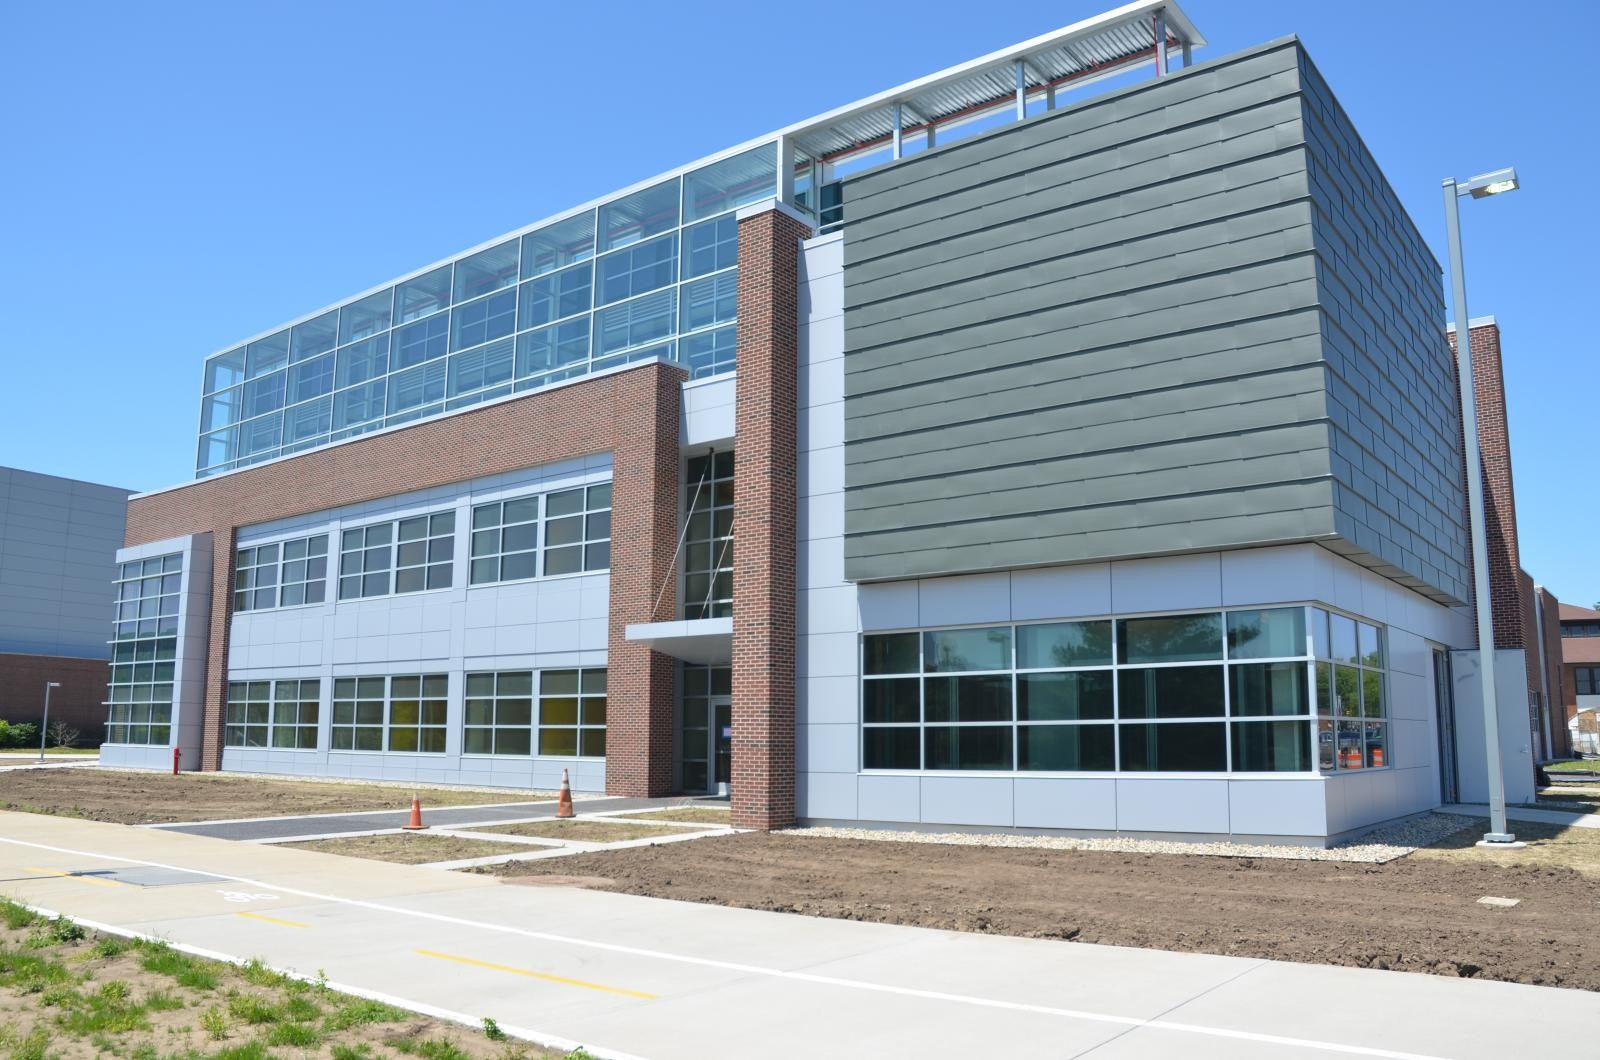 Marble Green Commercial Building Exteriors : Sustainable design build projects from seven universities